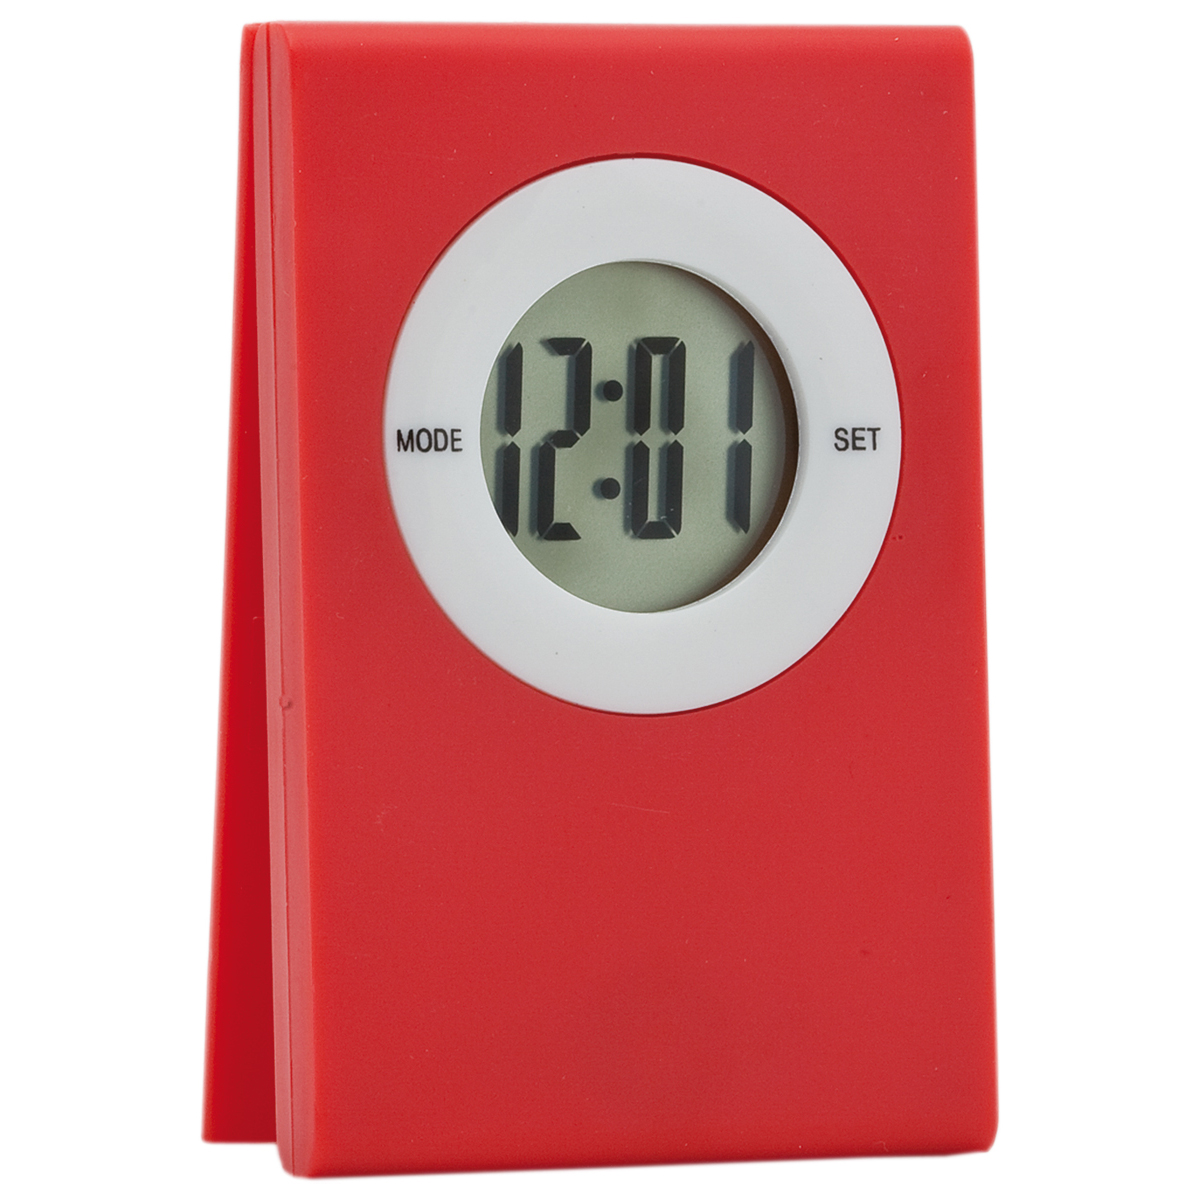 Table Clock 055 - hmi35055-04 (Red)